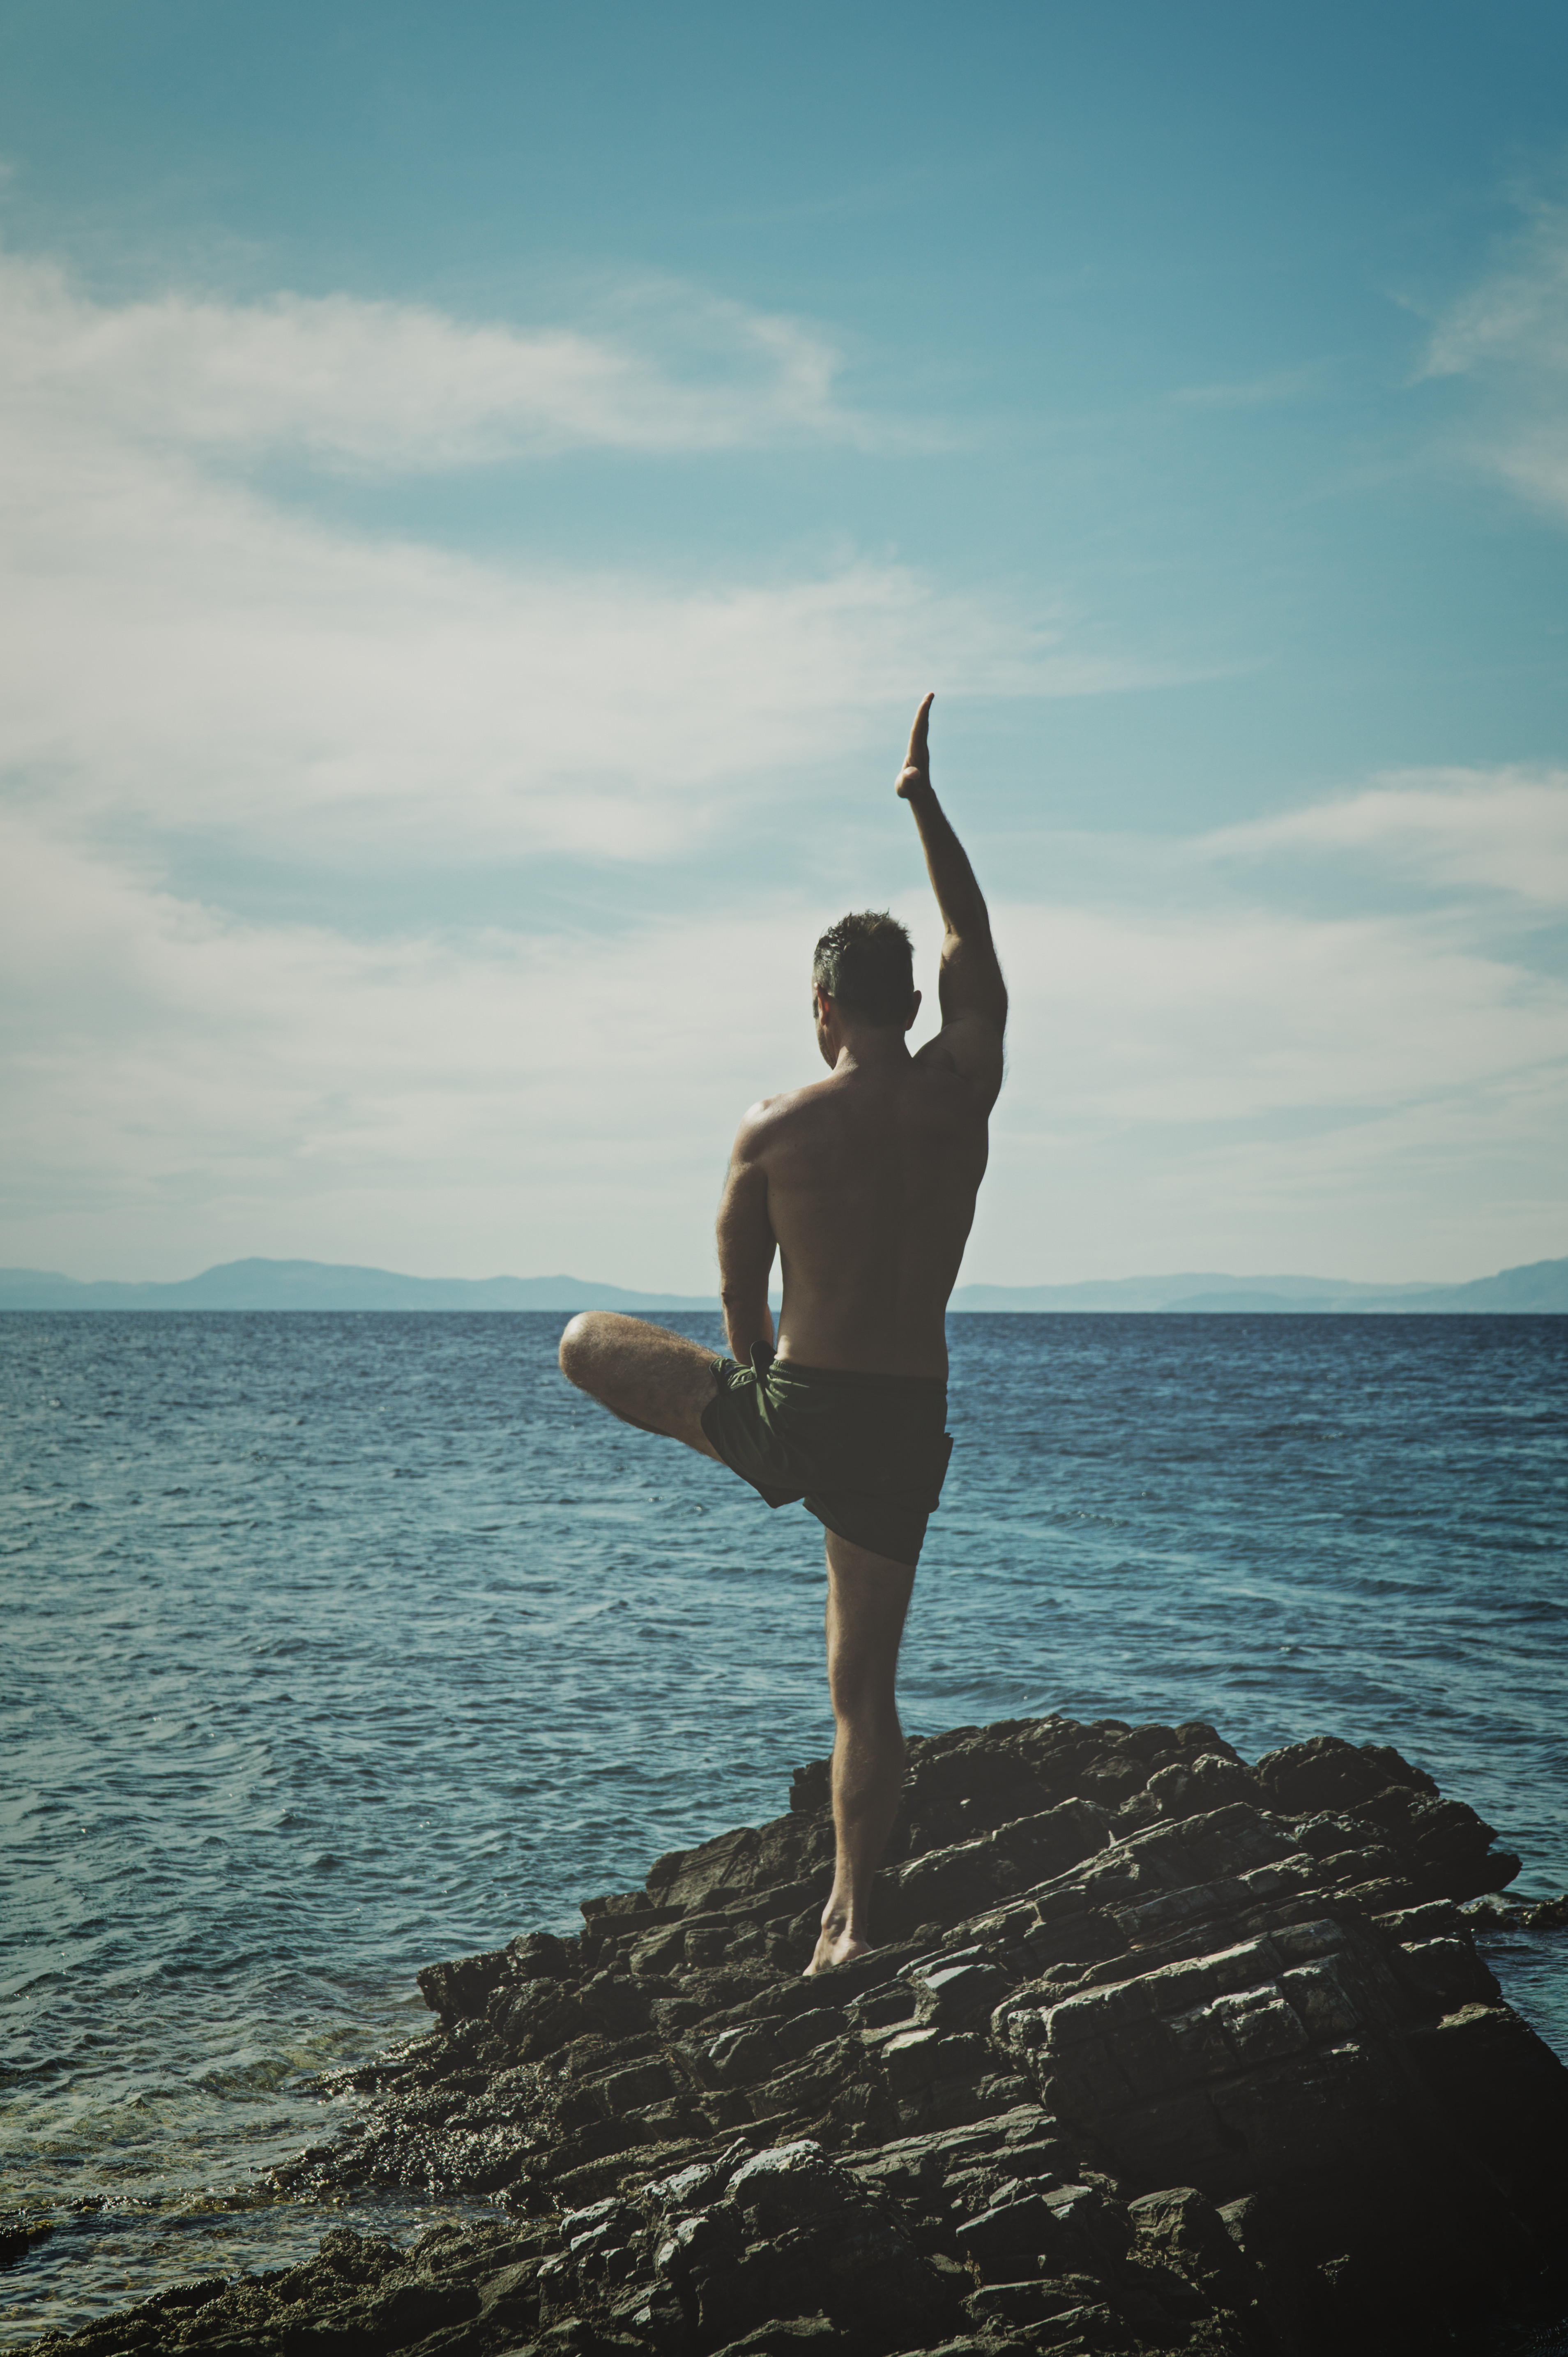 Wallpaper Iphone 4s Size Woman Doing Yoga 183 Free Stock Photo